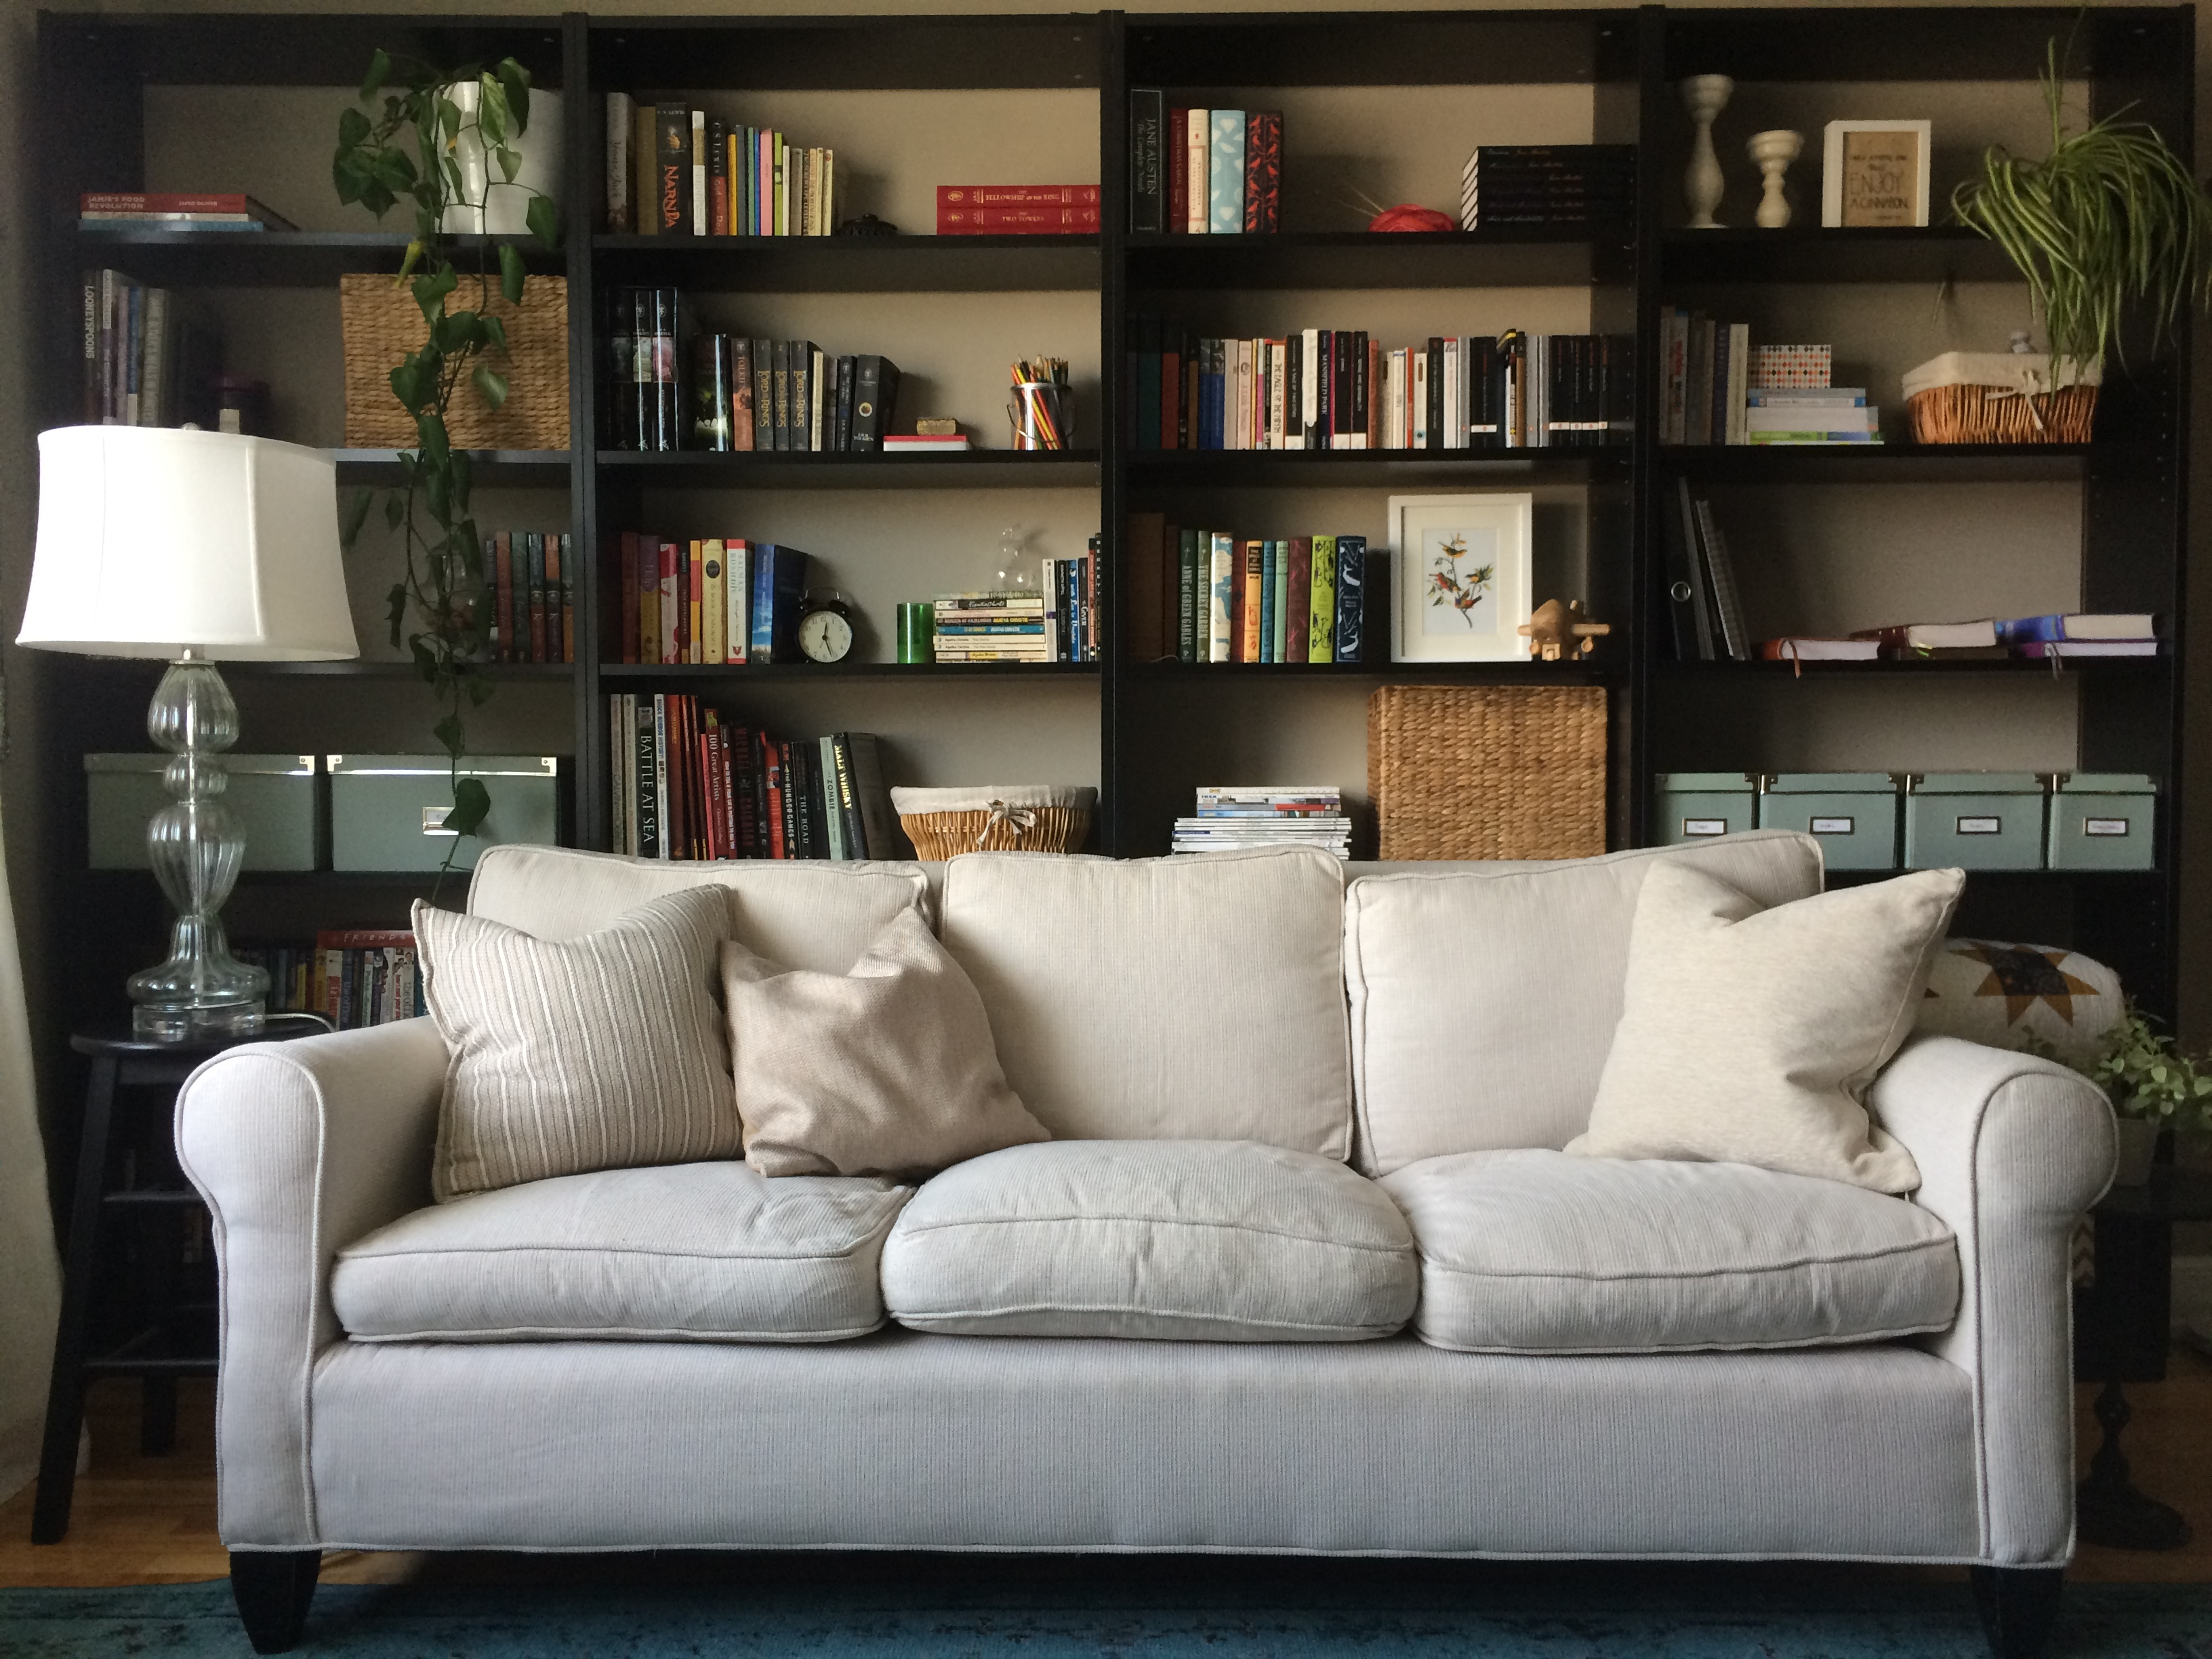 wall livingroom living couch dilemma lath plaster the ideas on and brick multiple painted of your twin hanging room wood shelf height big creative beds made hang storage behind funiture over with enchanting to contemporary design walls large pictures